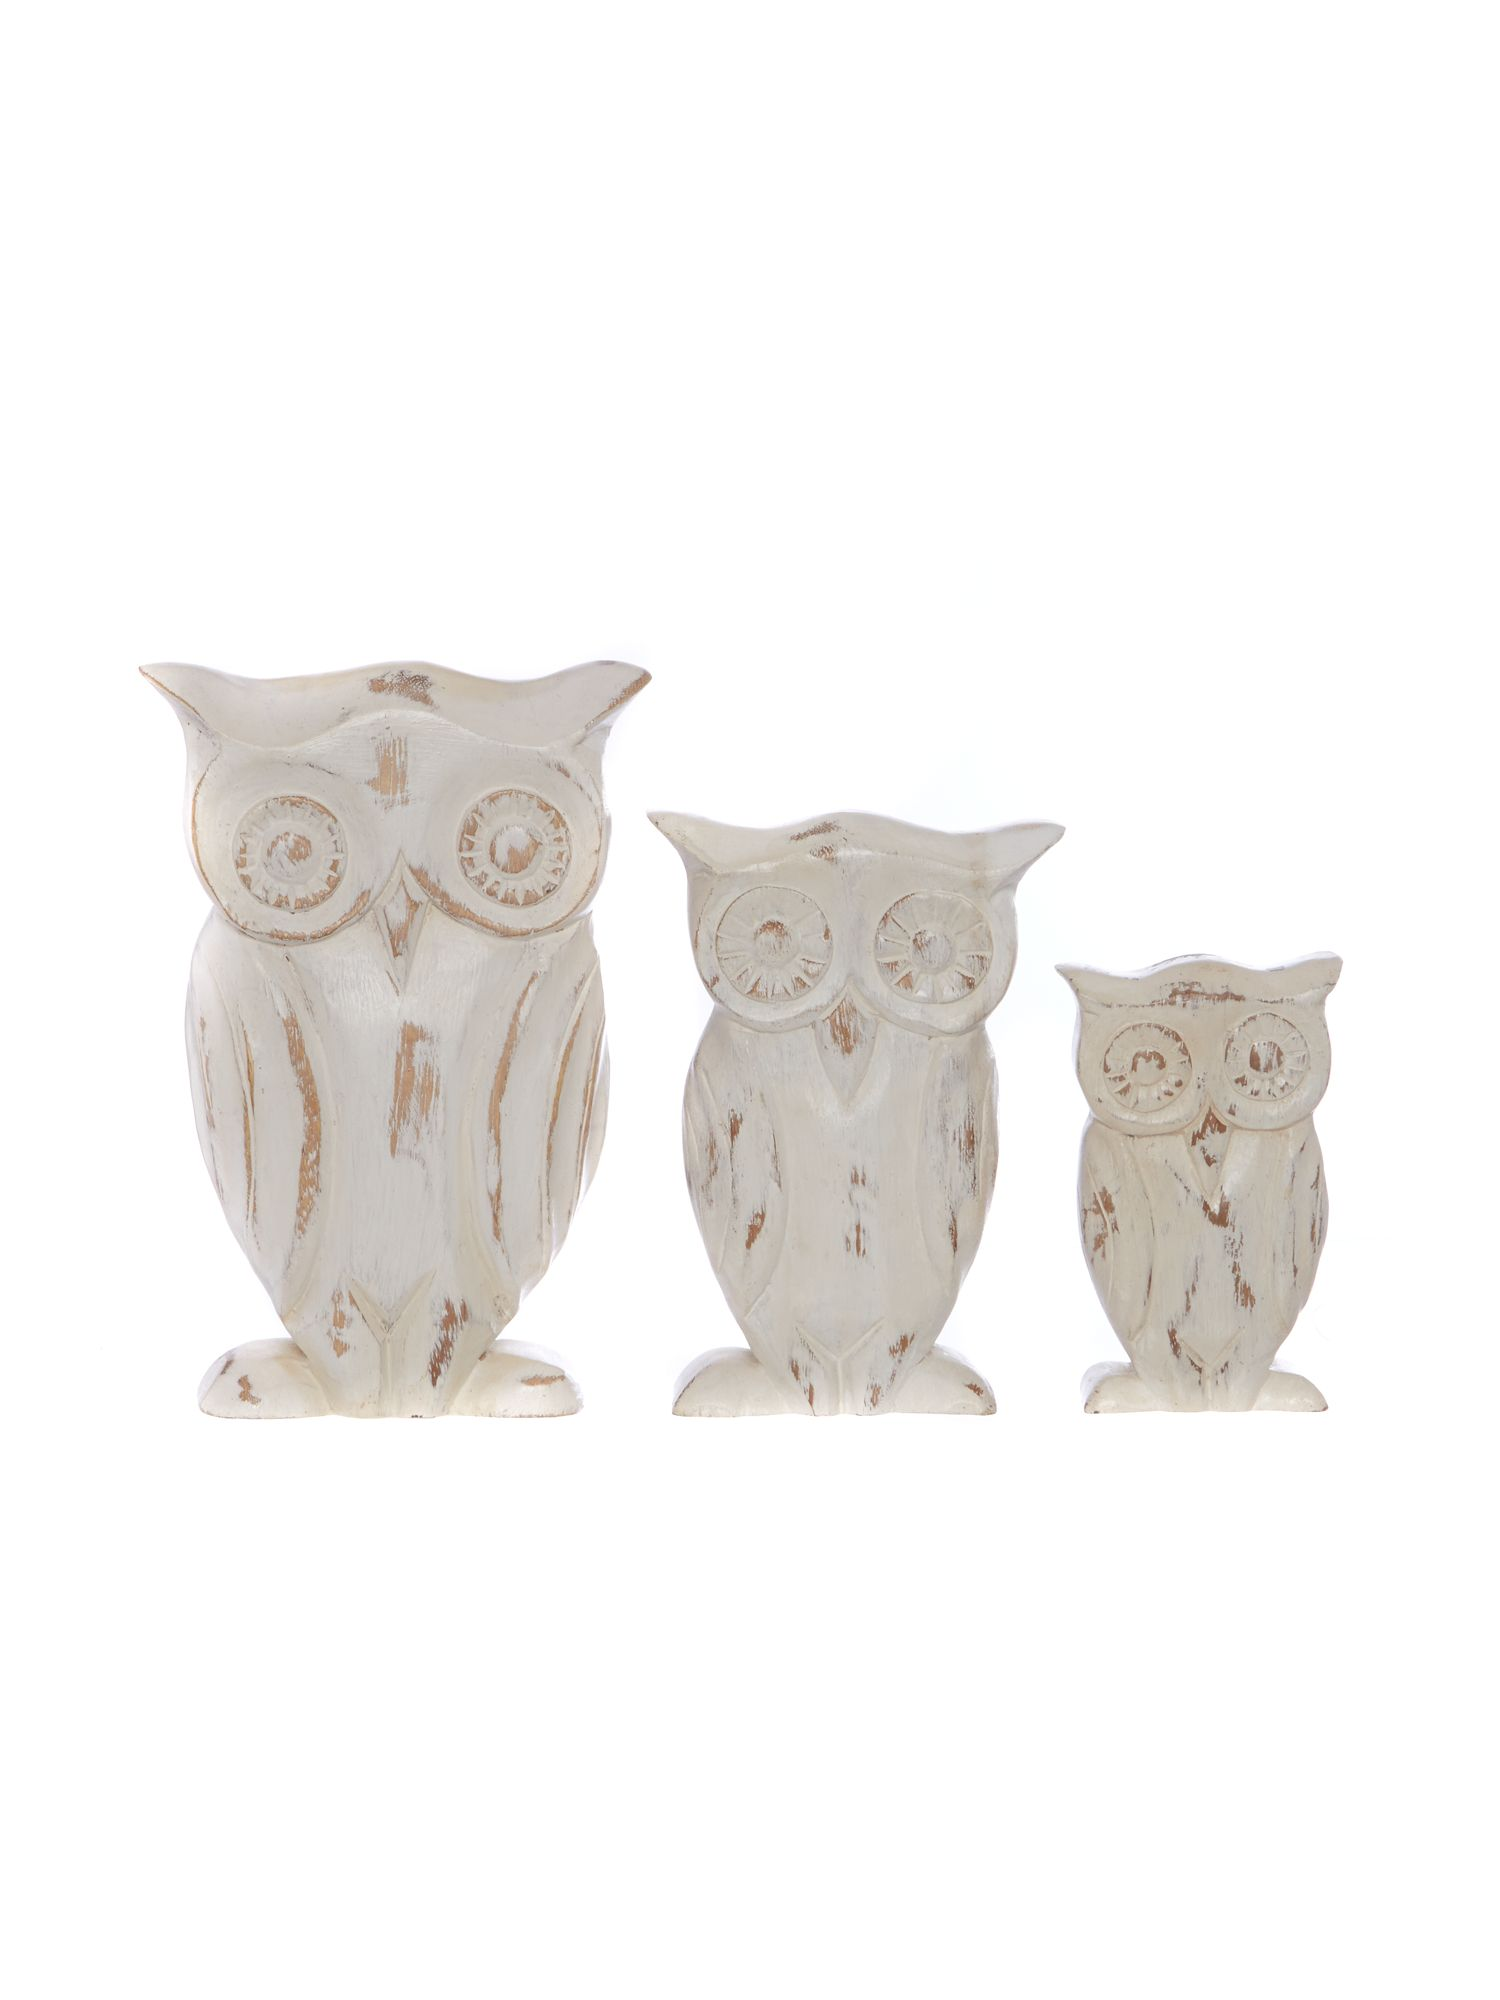 Wooden Owl collections